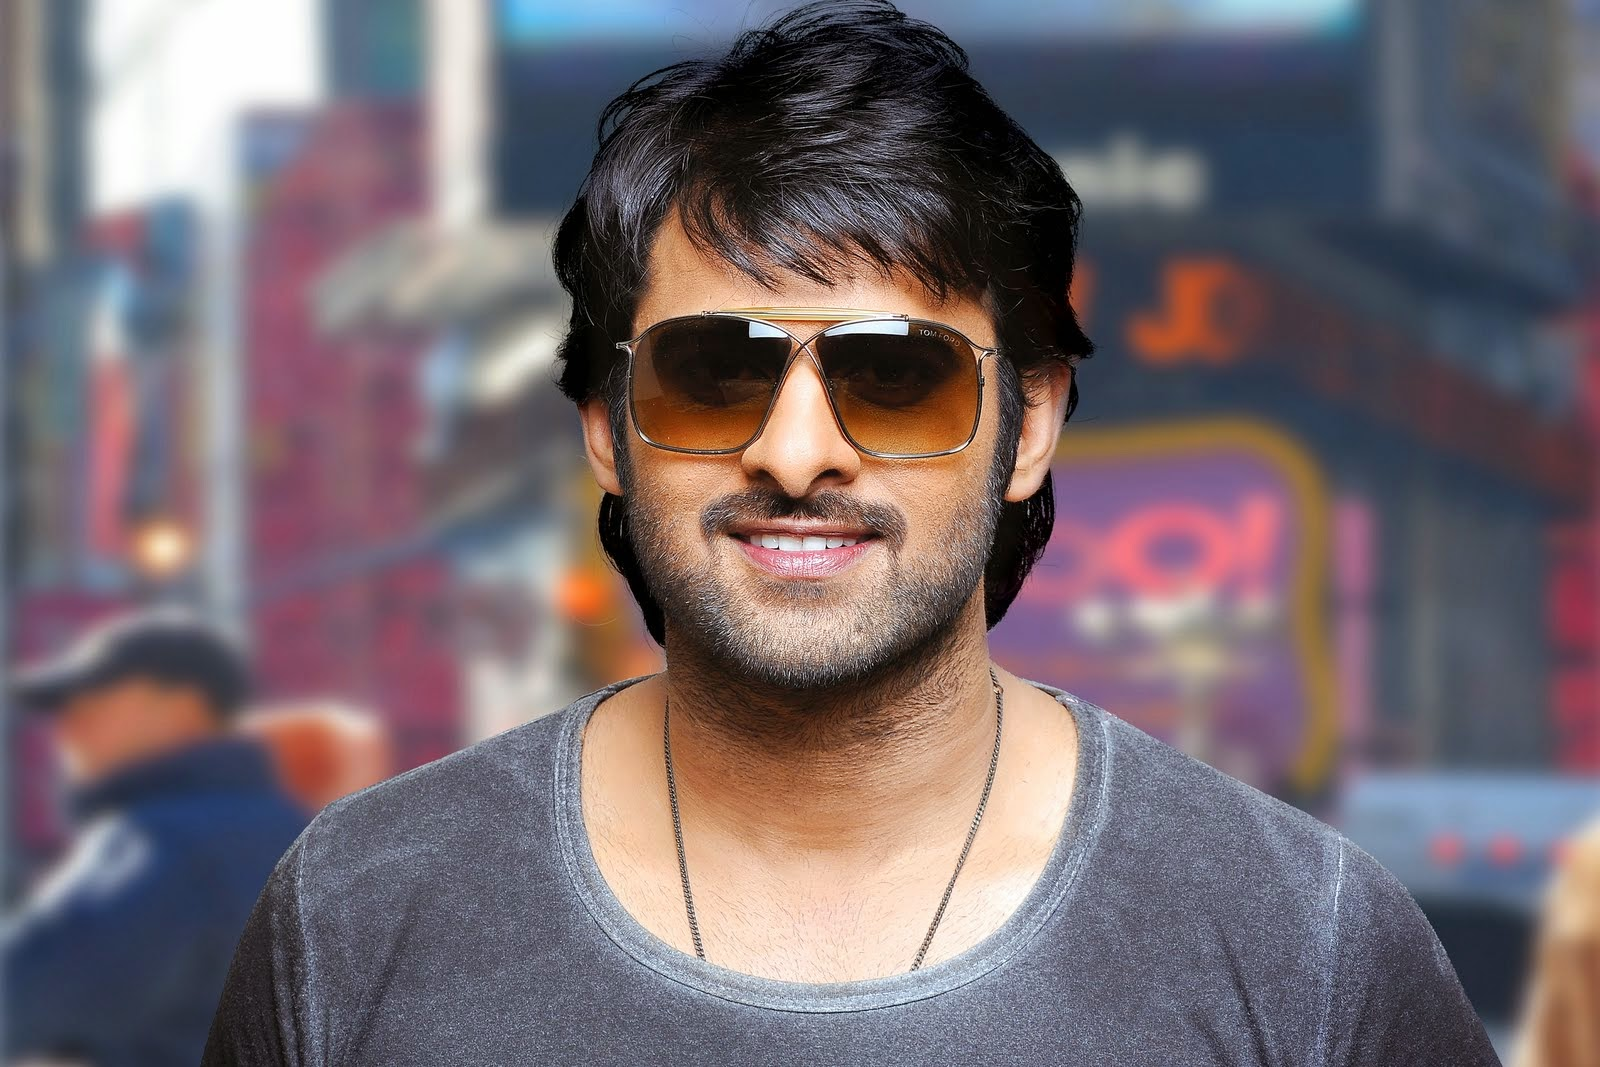 prabhas hd wallpapers.prabhas latest hd wallpapers.prabhas